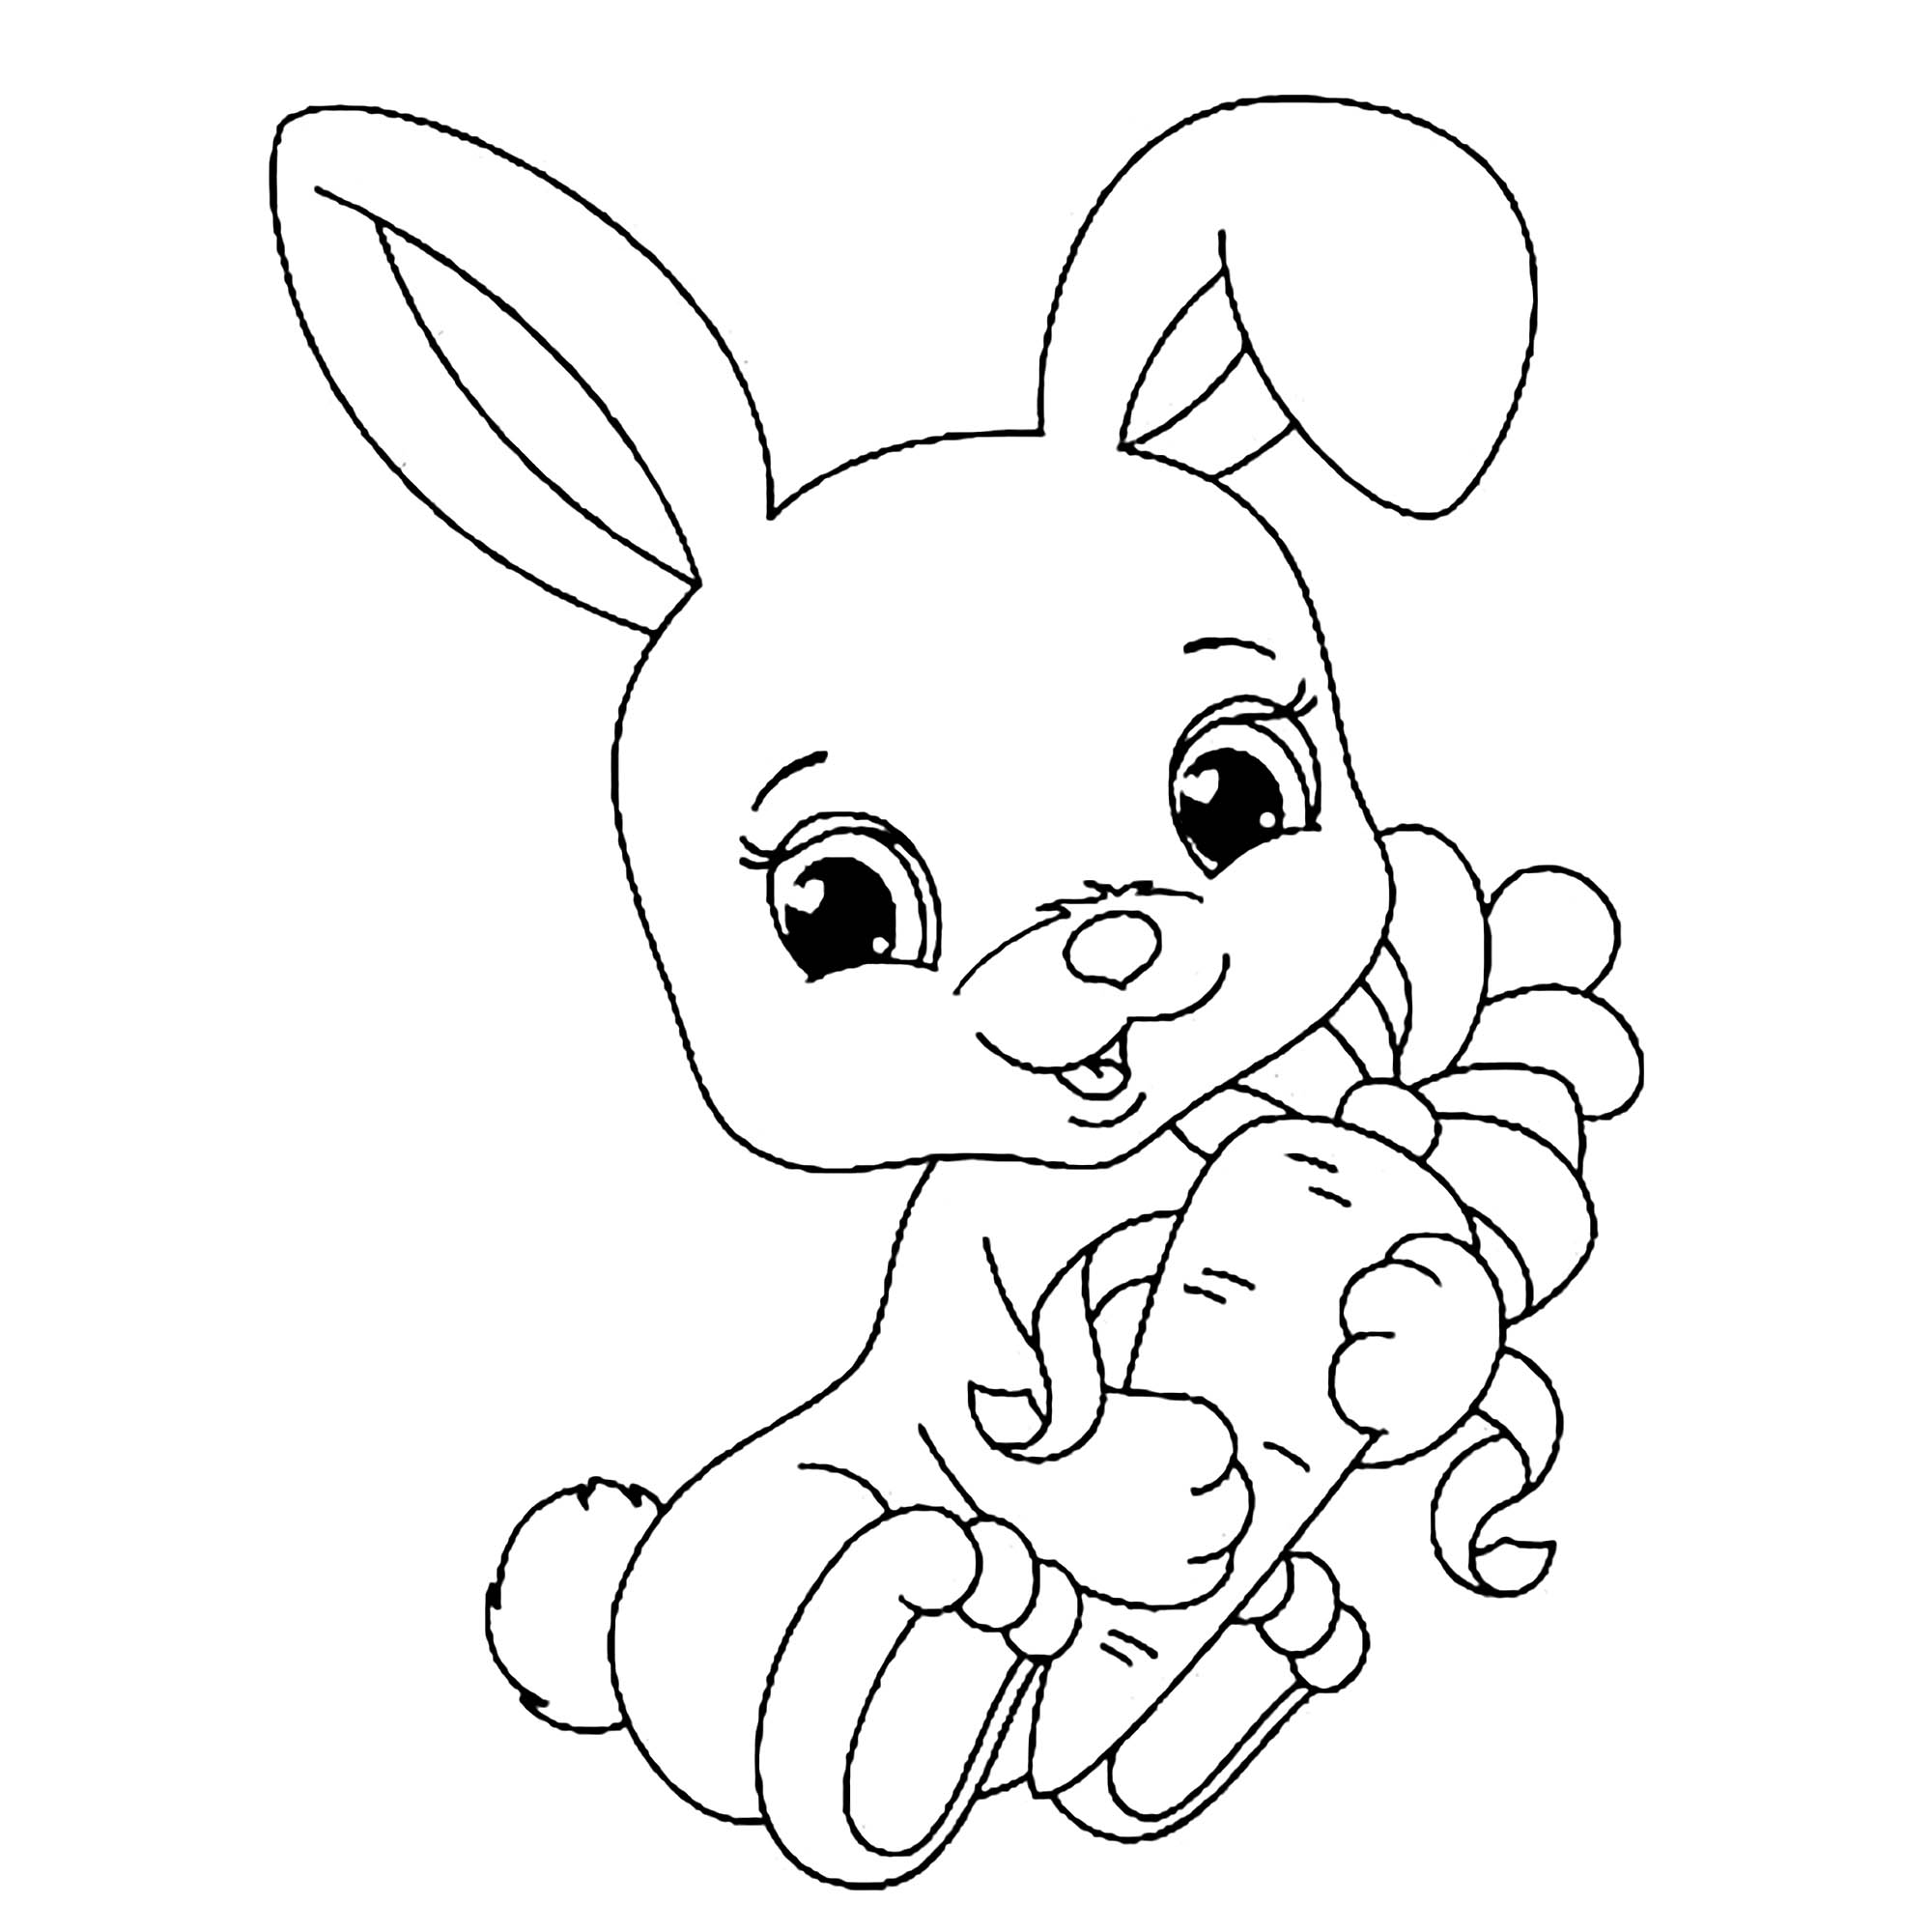 rabbit coloring image rabbit to color for children rabbit kids coloring pages rabbit image coloring